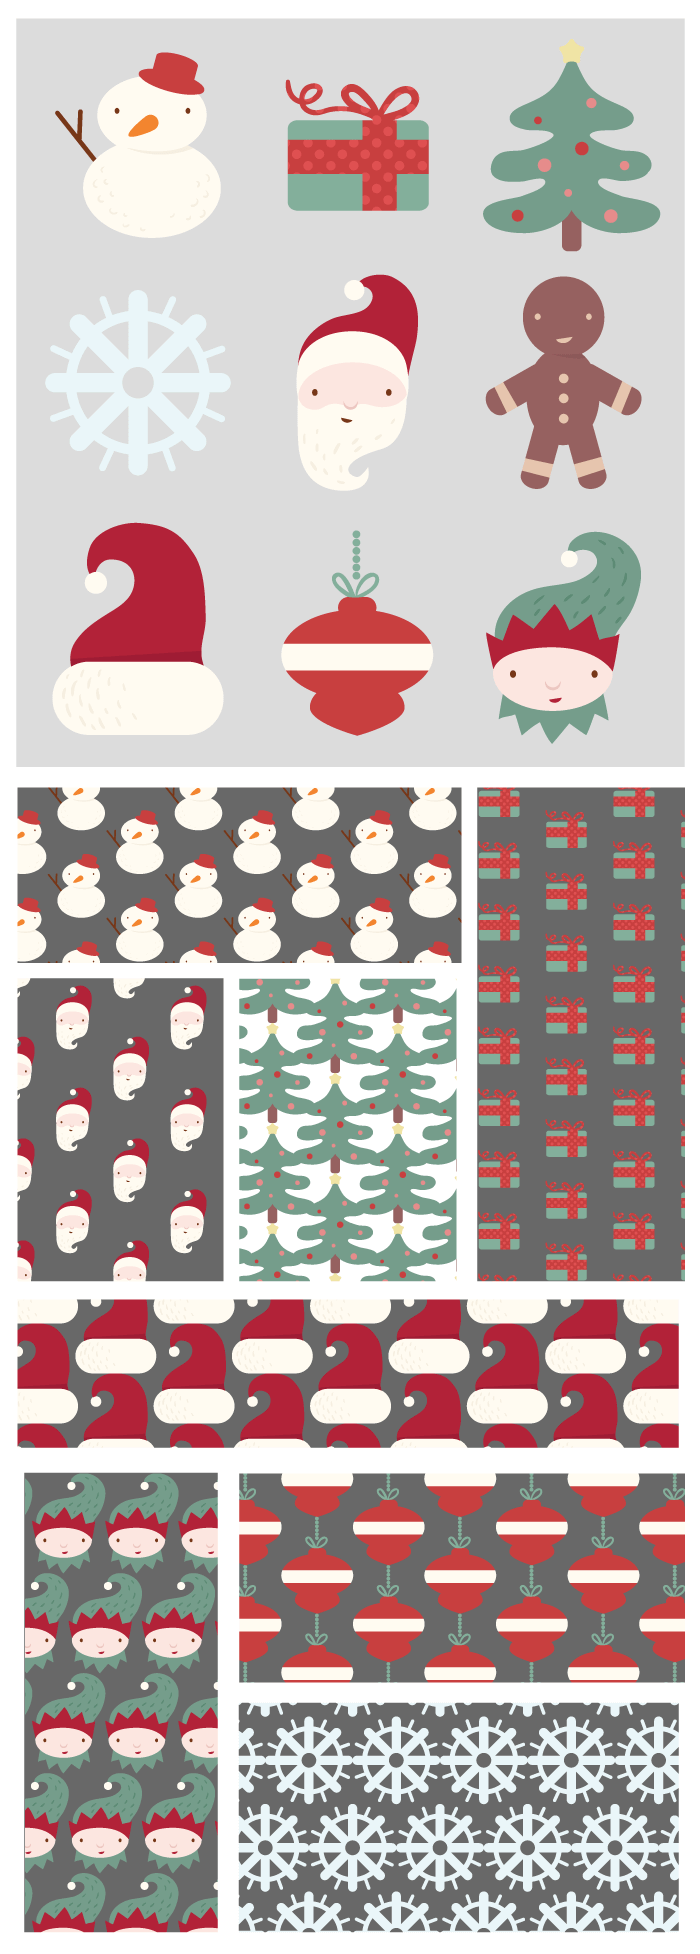 Santa Claus and his helpers in different guises for Christmas.